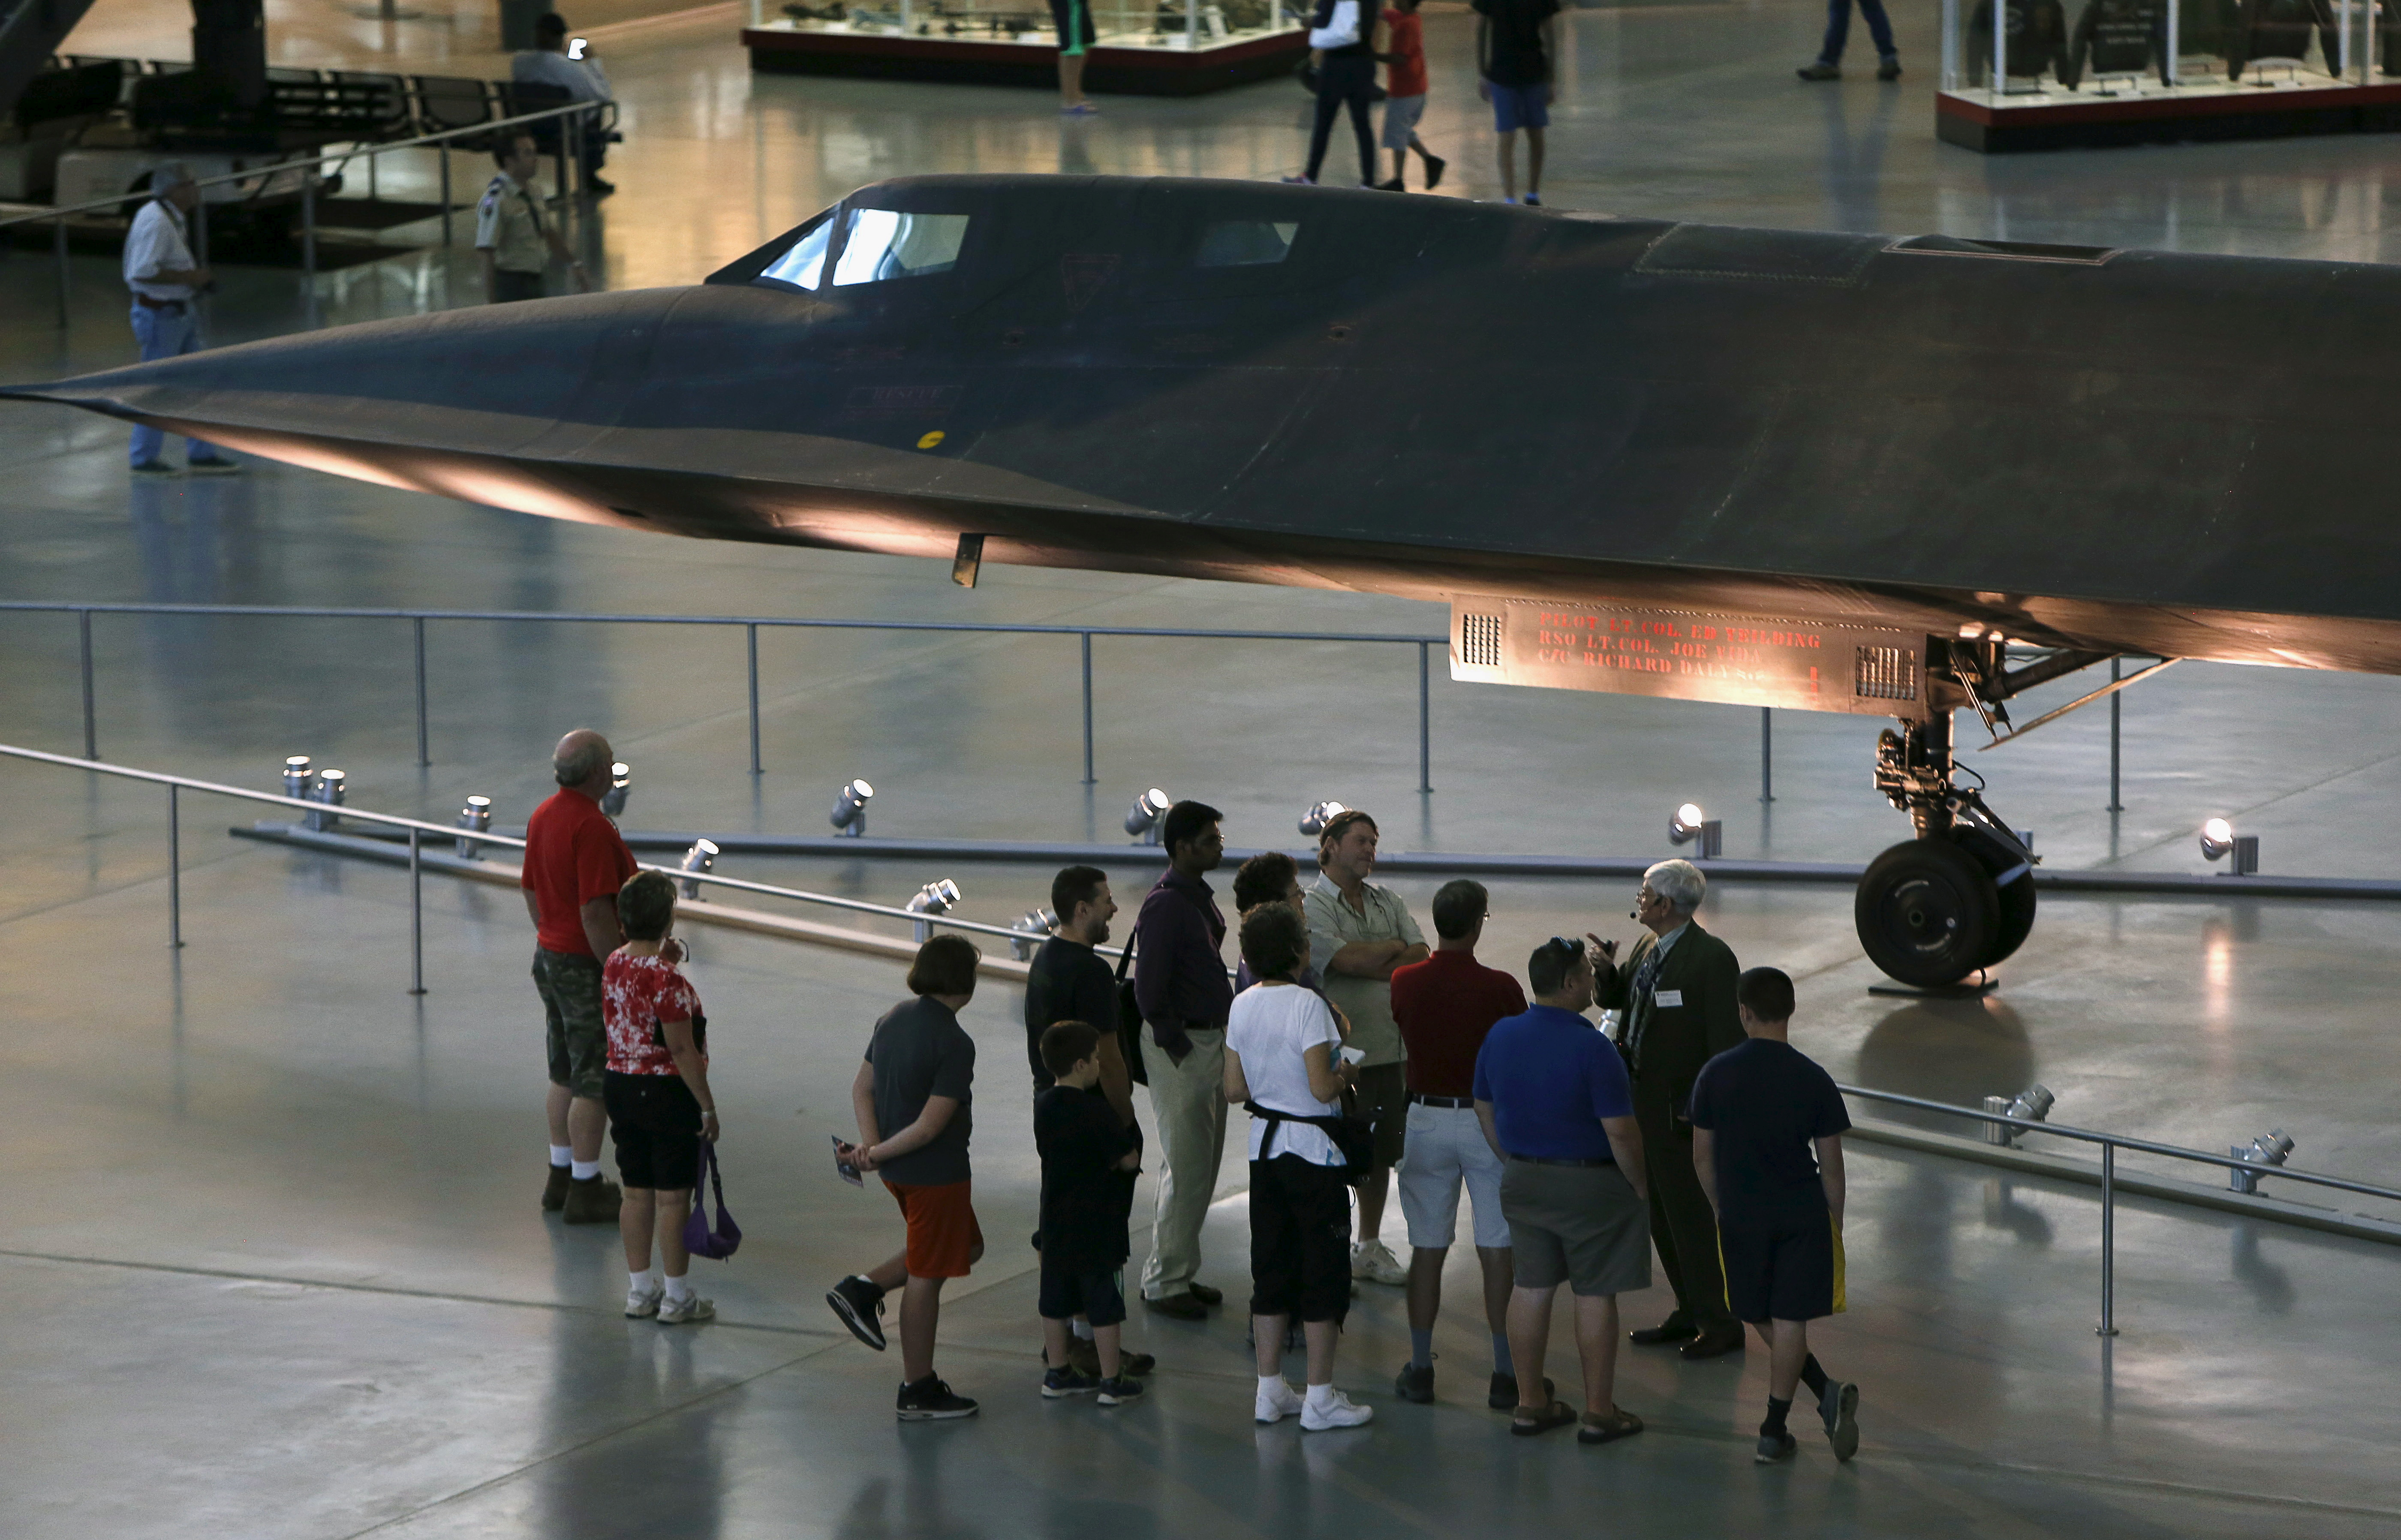 A tour group gathers under a Lockheed SR-71 Blackbird at the Udvar-Hazy Smithsonian National Air and Space Annex Museum in Chantilly, Virginia August 28, 2015. The SR-71 was a long-range spy plane that was in use from 1964 to 1998 and designed to operate at three times the speed of sound. REUTERS/Gary Cameron/